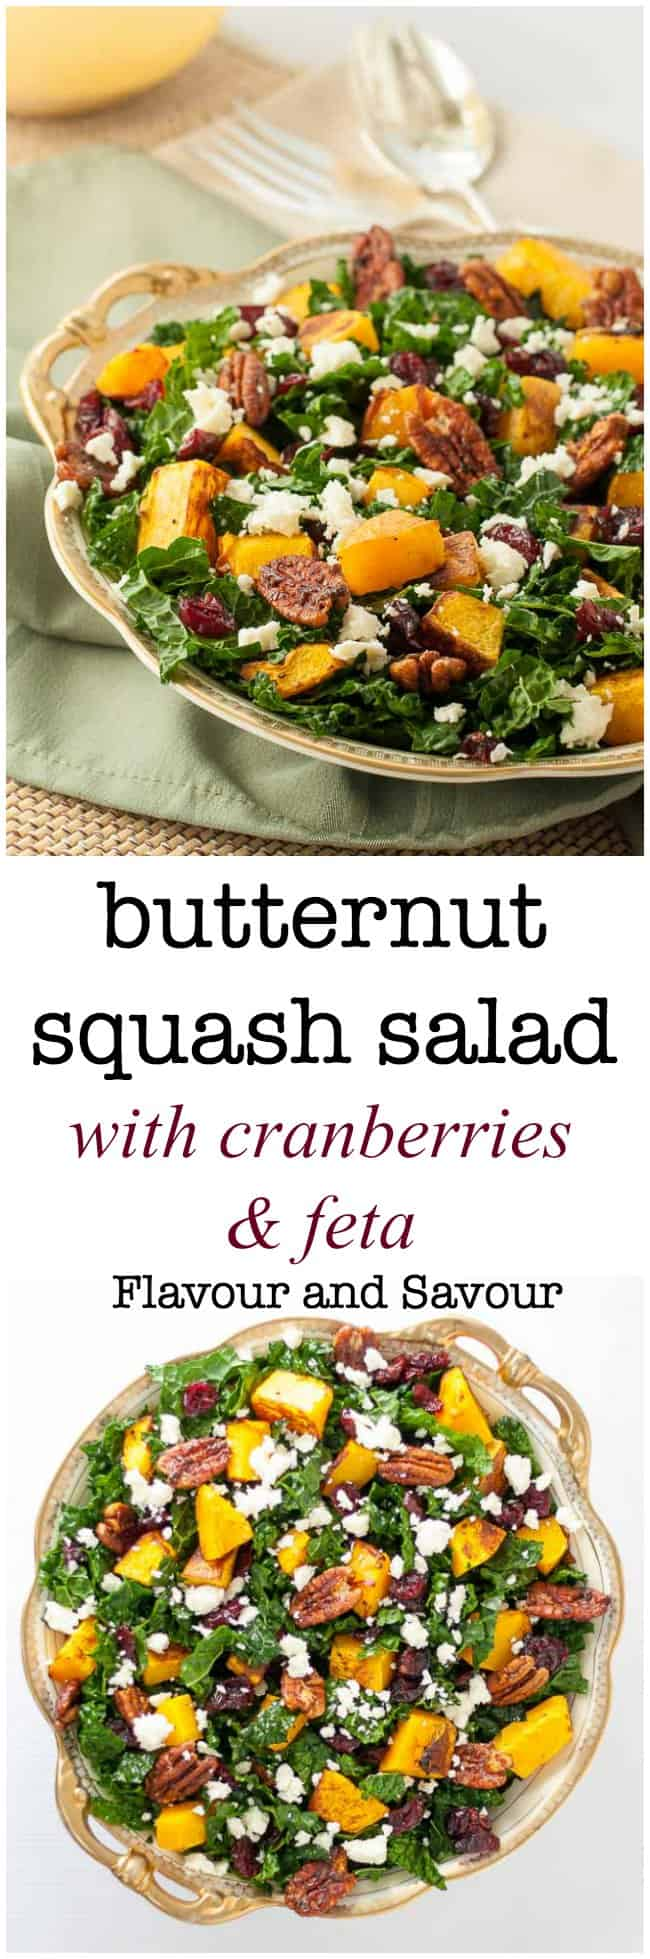 Rich autumn flavours and rustic warm colours make this Butternut Squash Salad with kale, cranberries and feta a favourite choice for fall or winter!